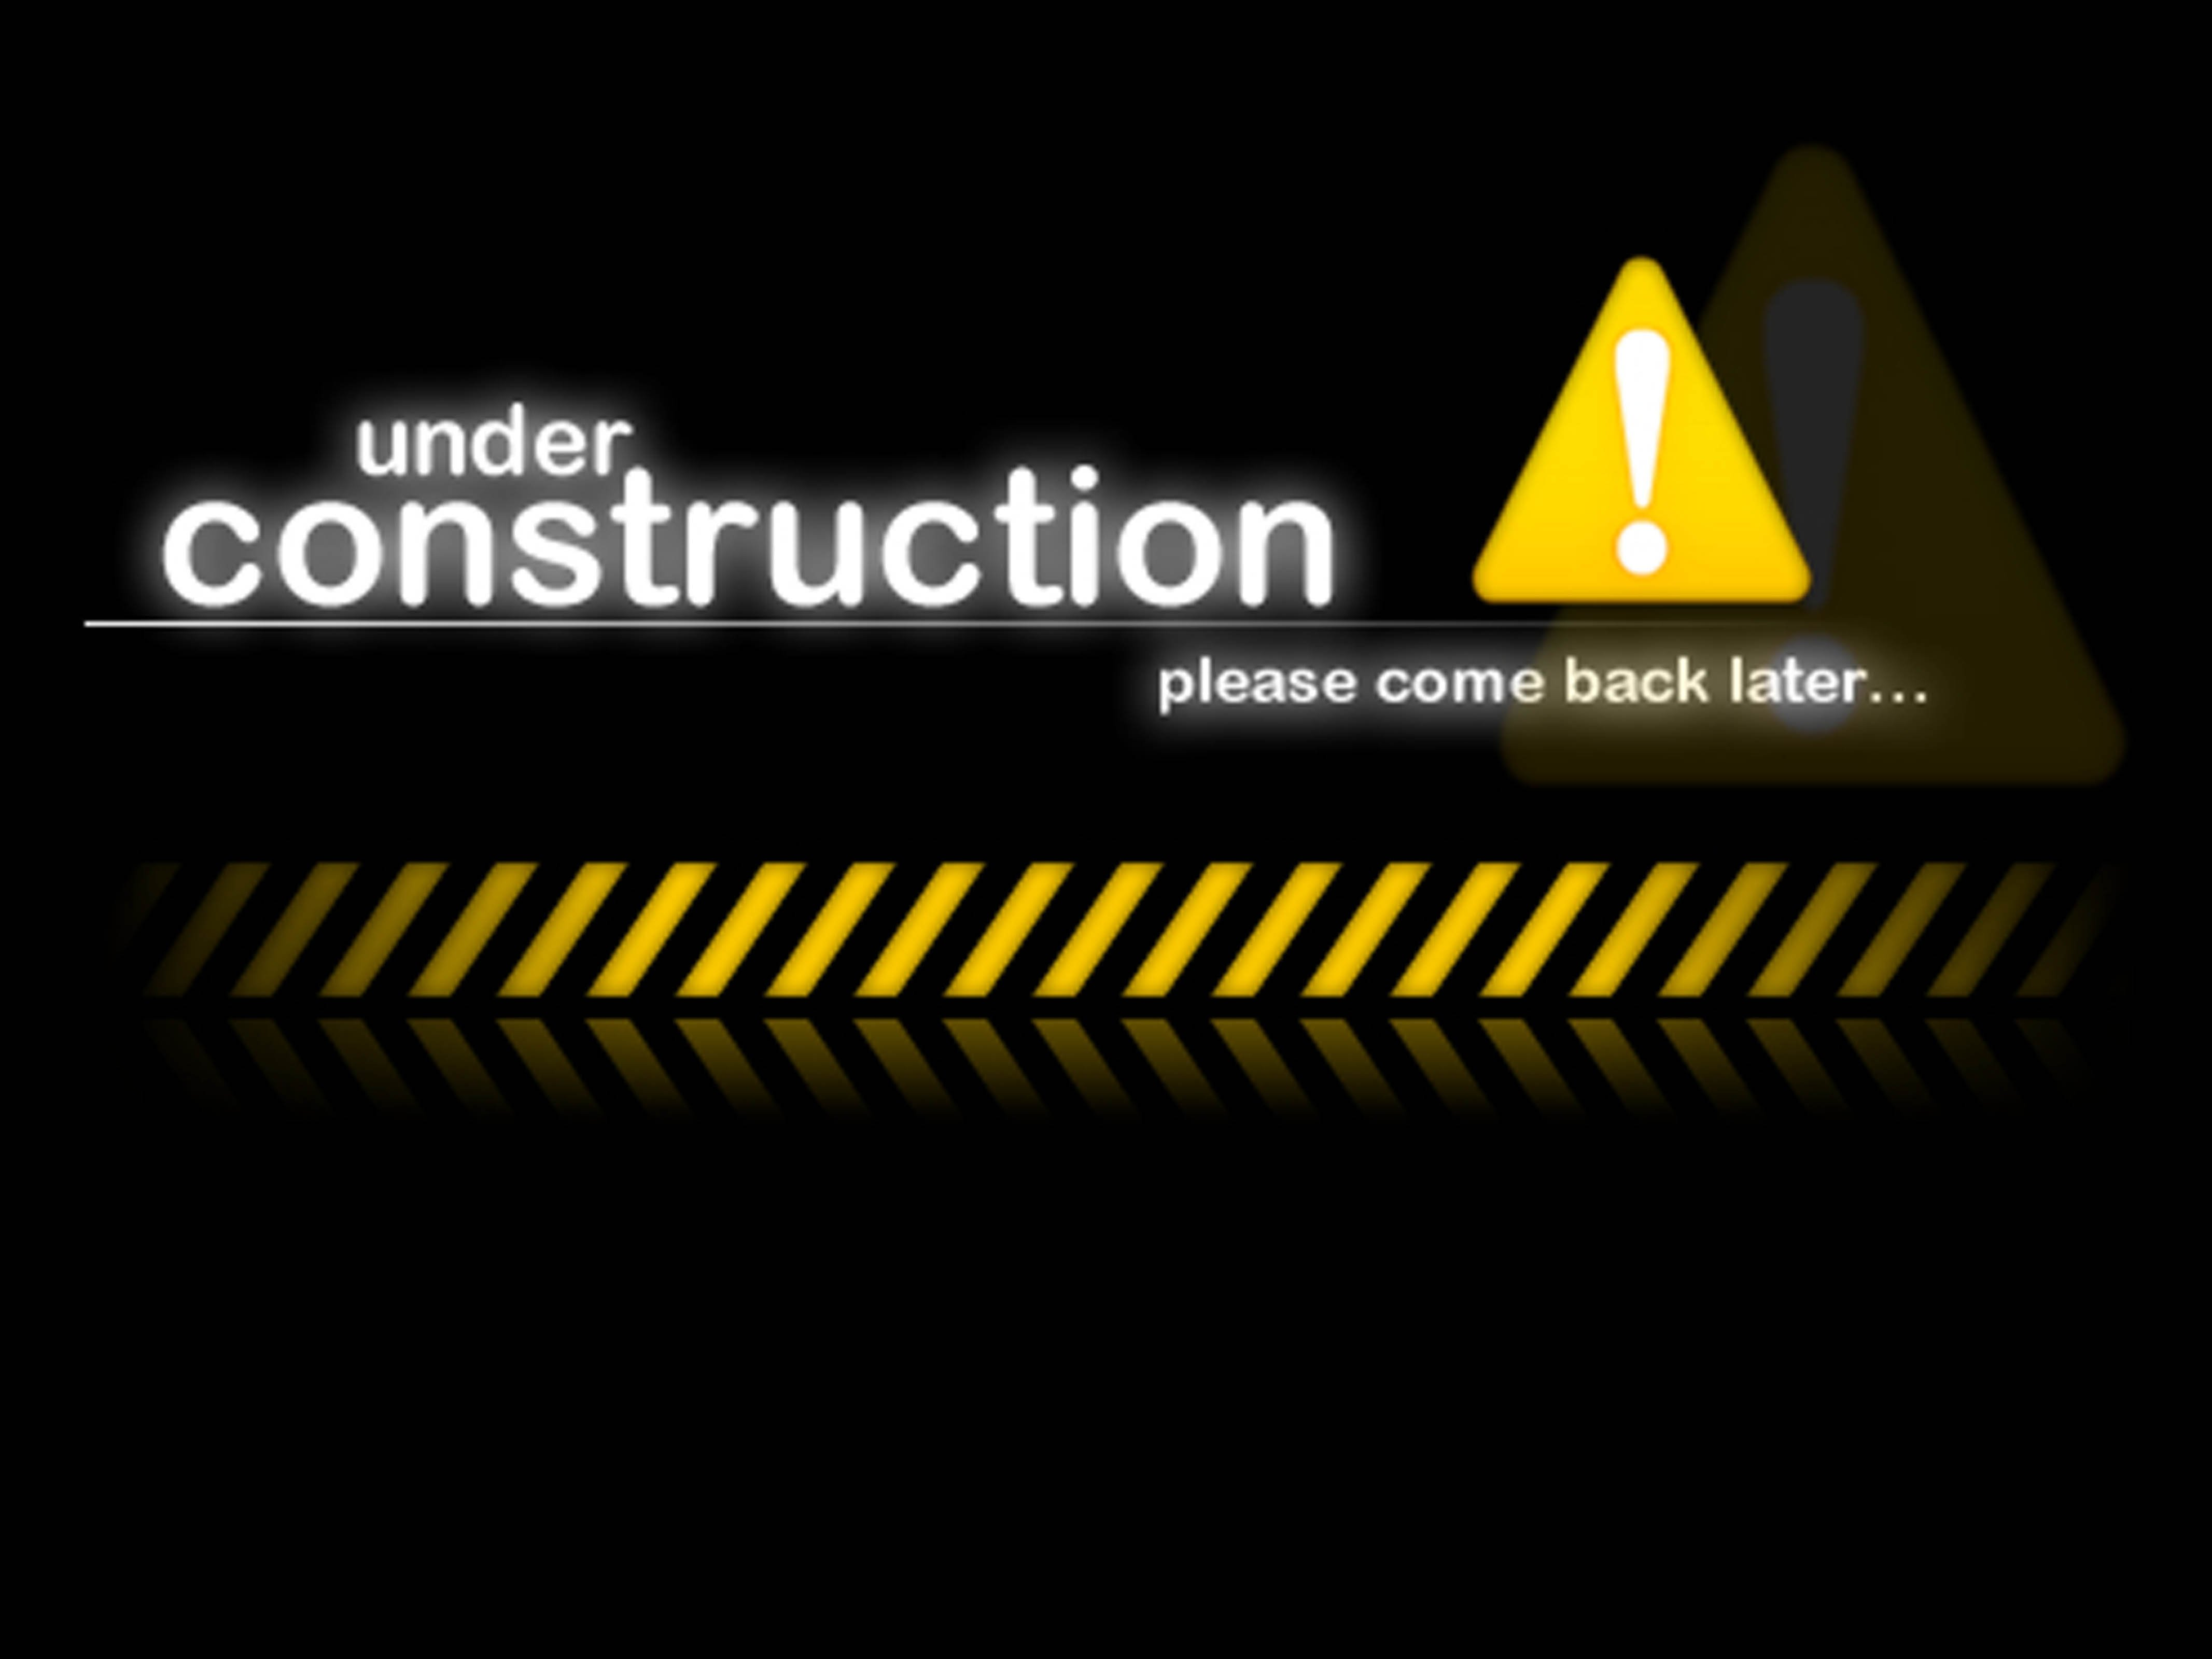 under construction sign work computer humor funny text maintenance wallpaper website web